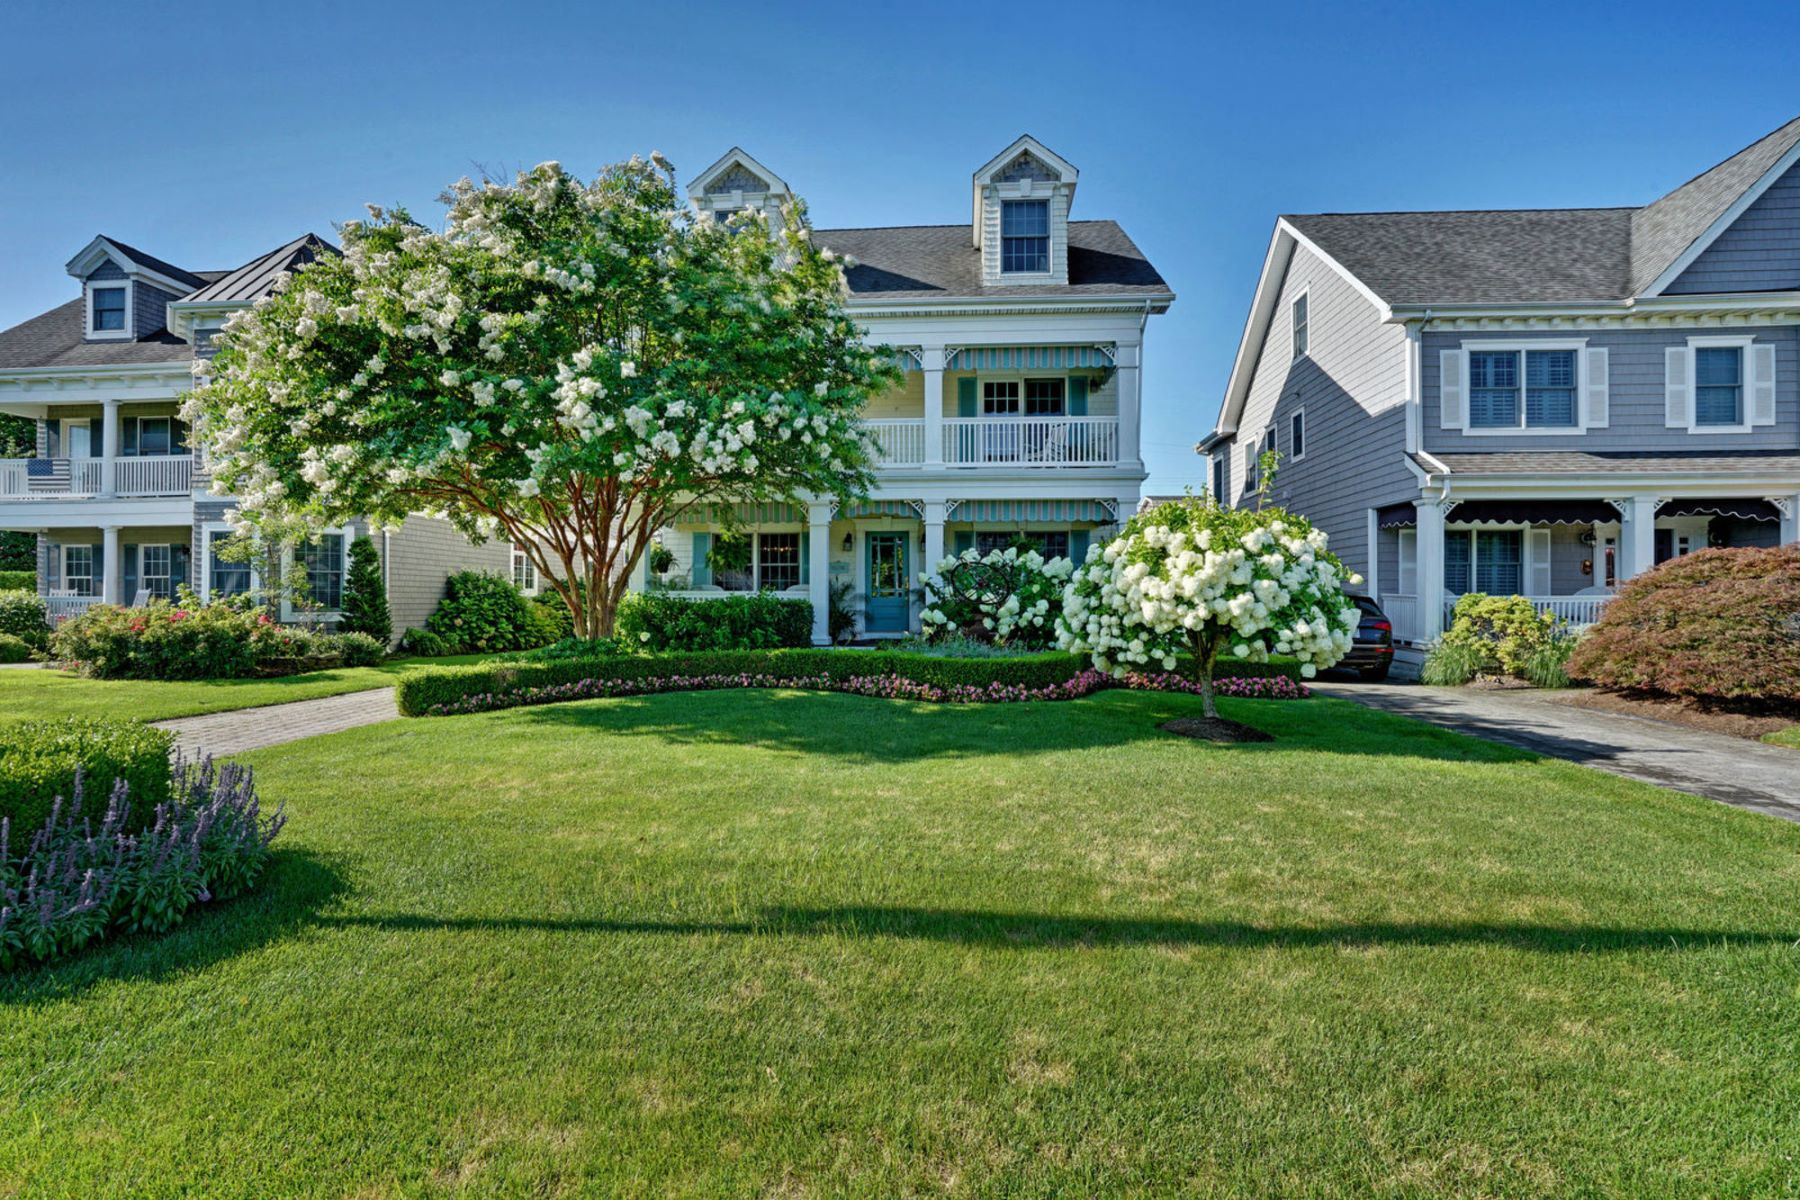 Single Family Homes for Active at Comfortable Beach Retreat 214 New York Boulevard Sea Girt, New Jersey 08750 United States